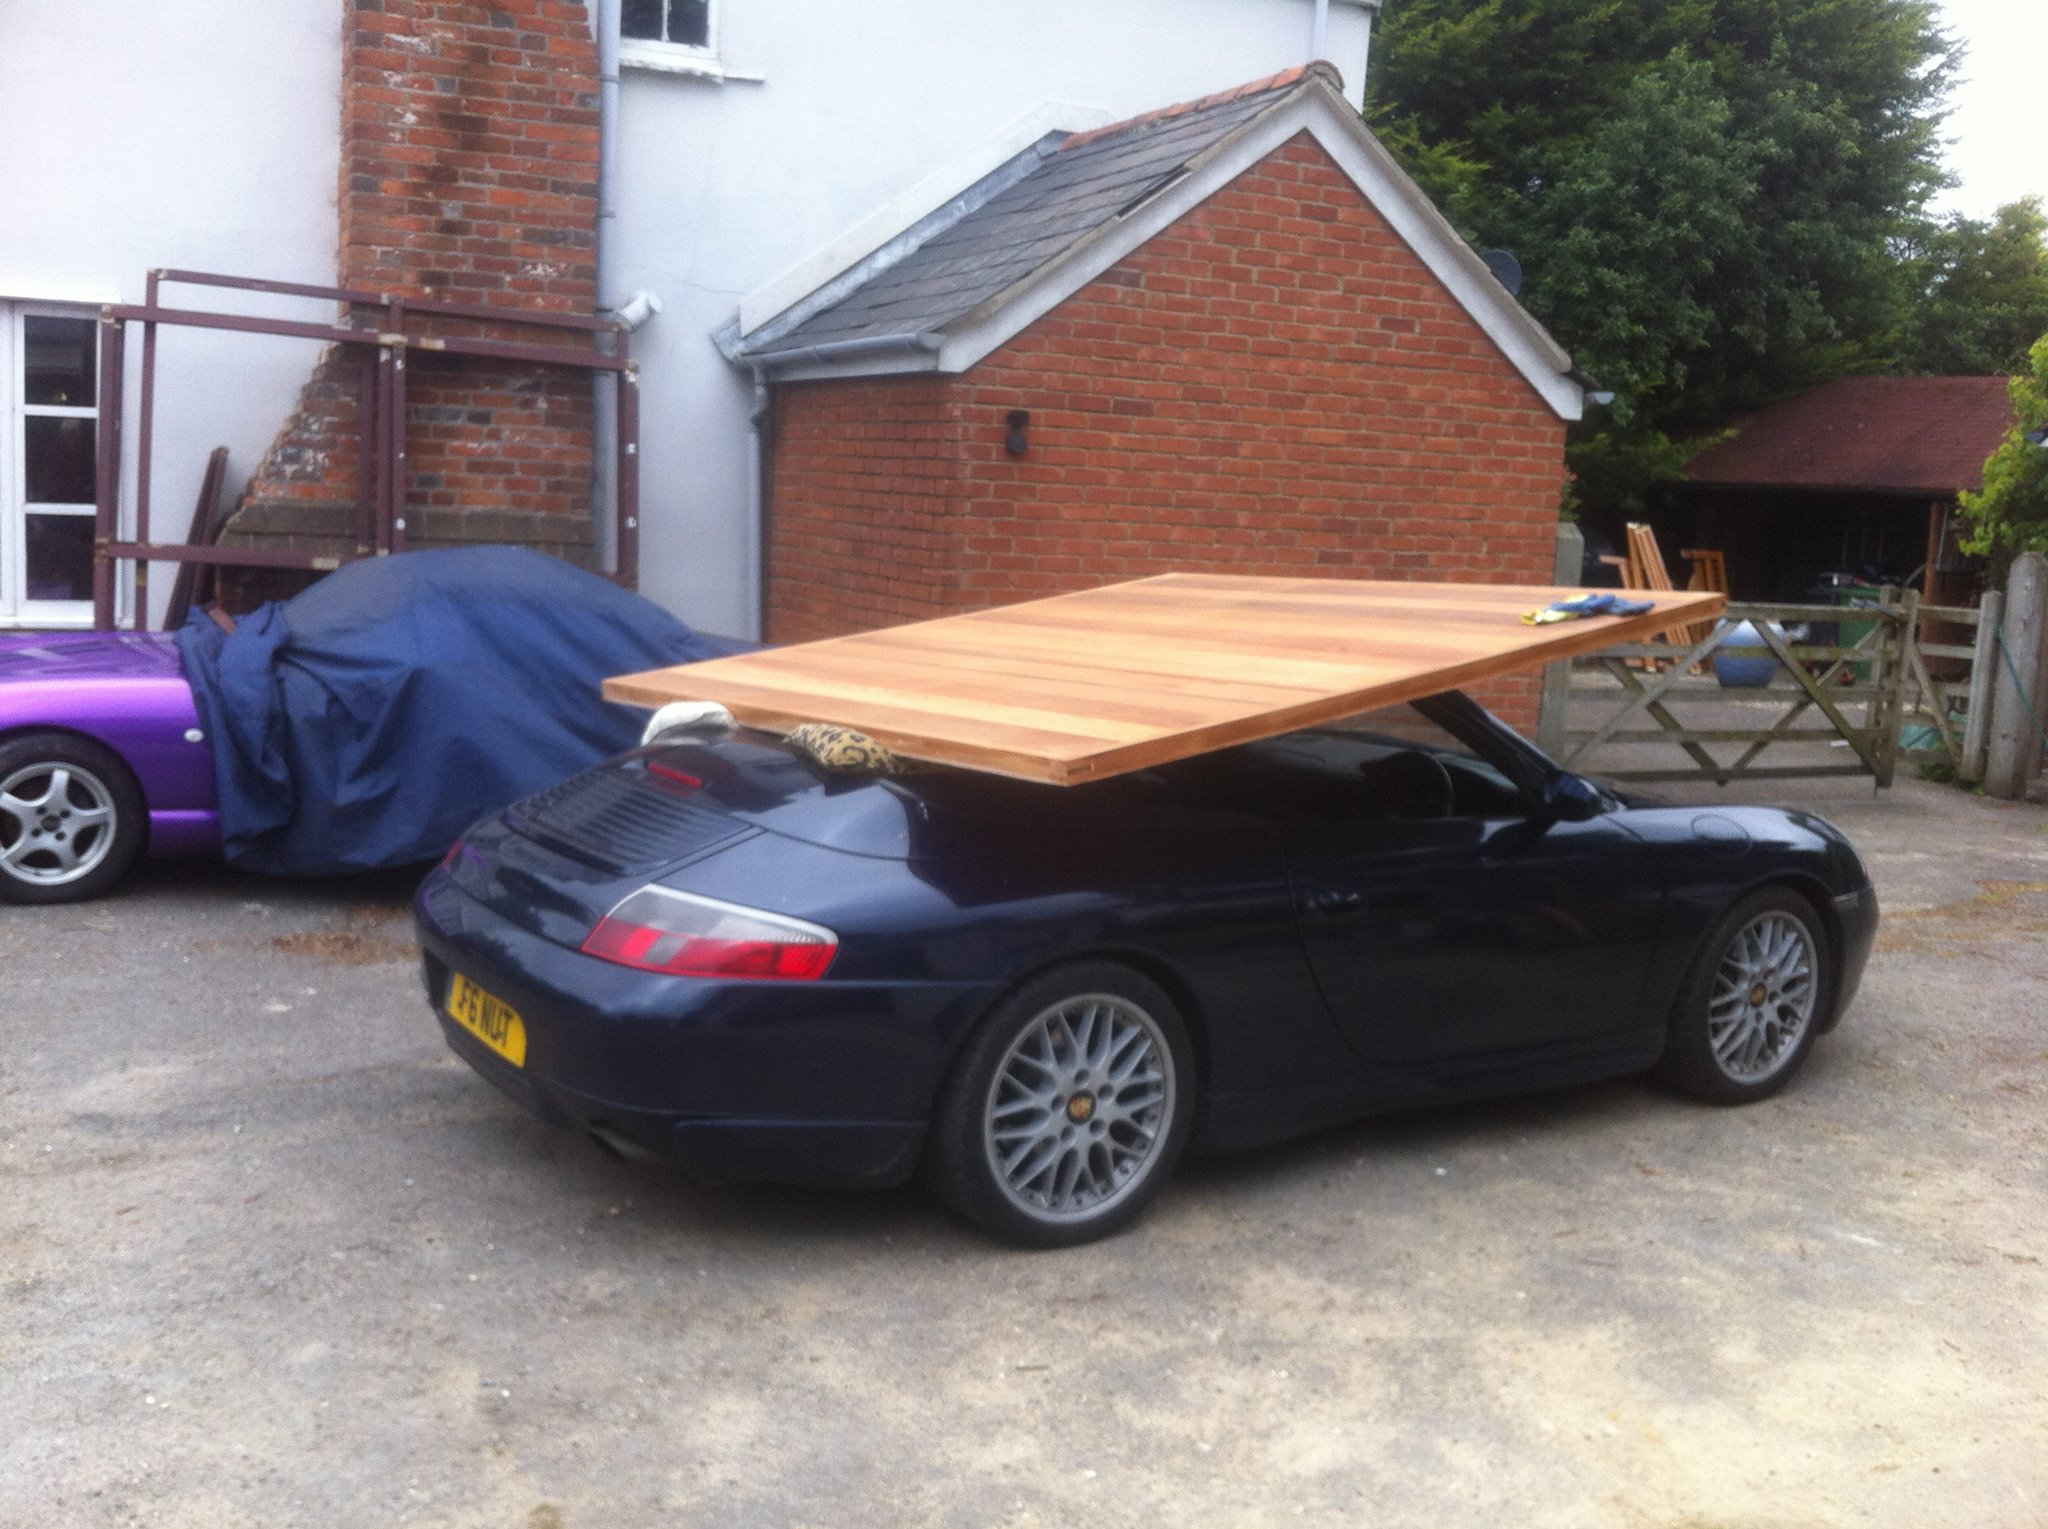 the time we decided to transport a garage door using a 996 911 what stories do you have of hilariously impractical cars being used to transport things